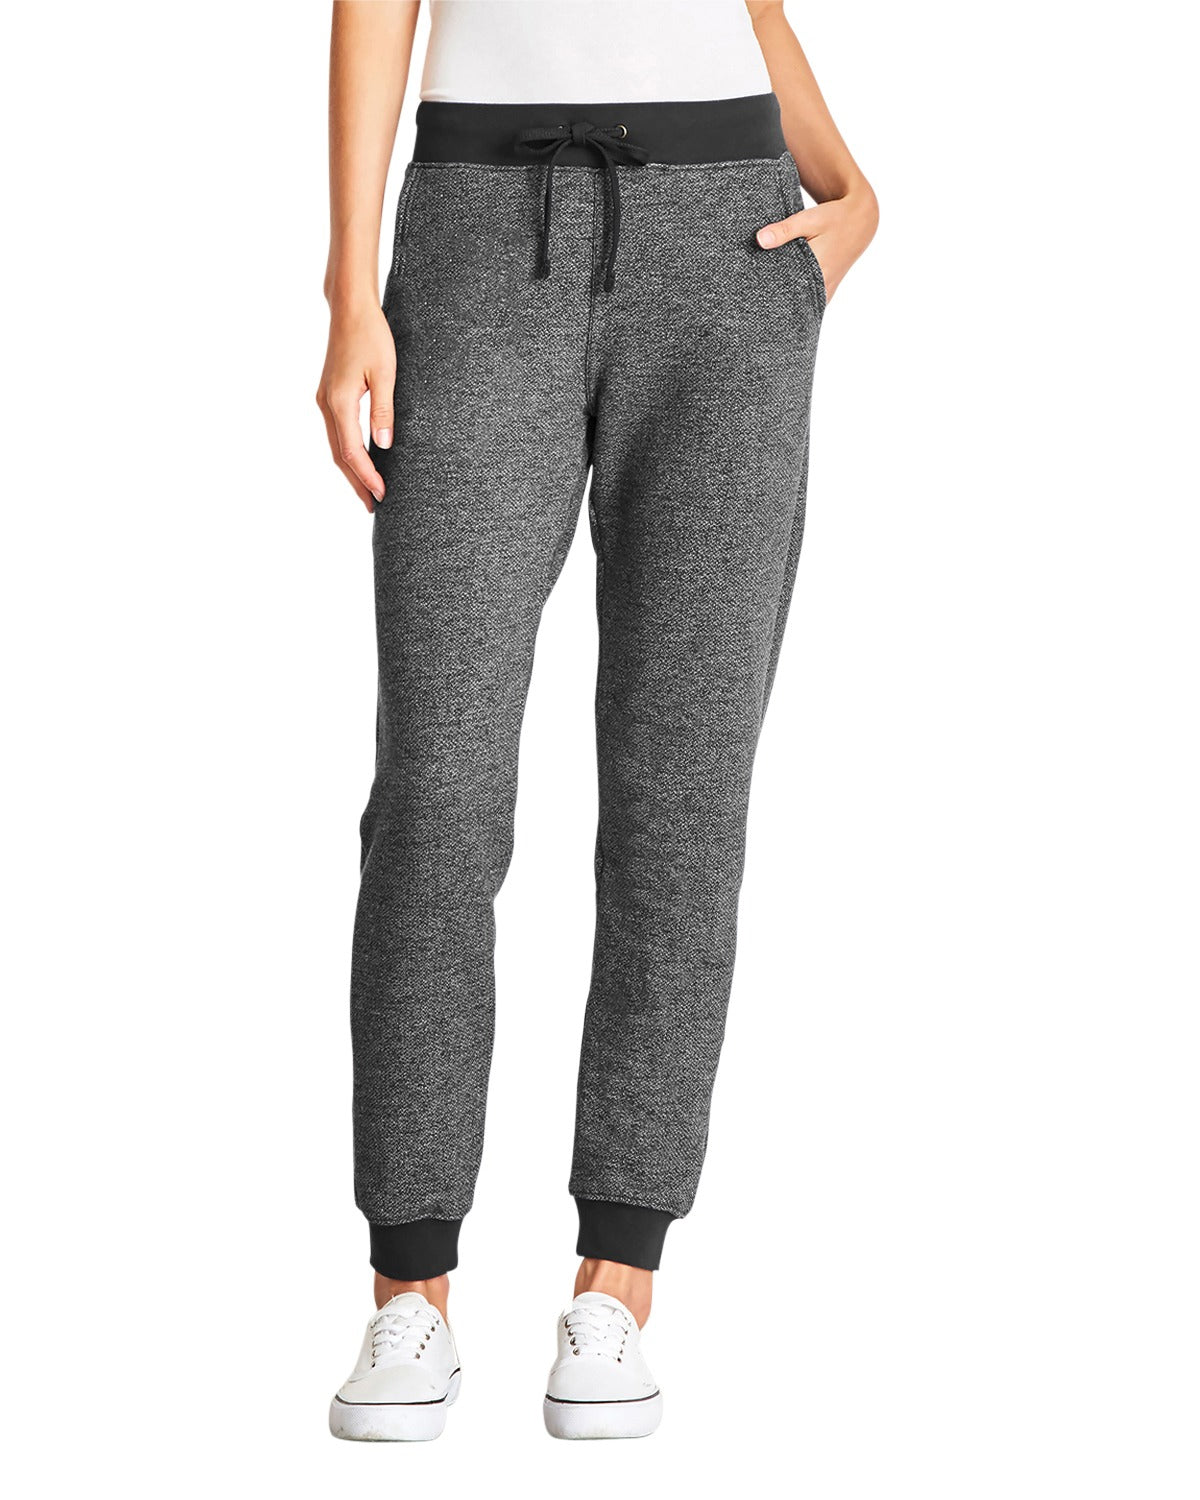 NEXT LEVEL LADIES DENIM FLEECE JOGGER